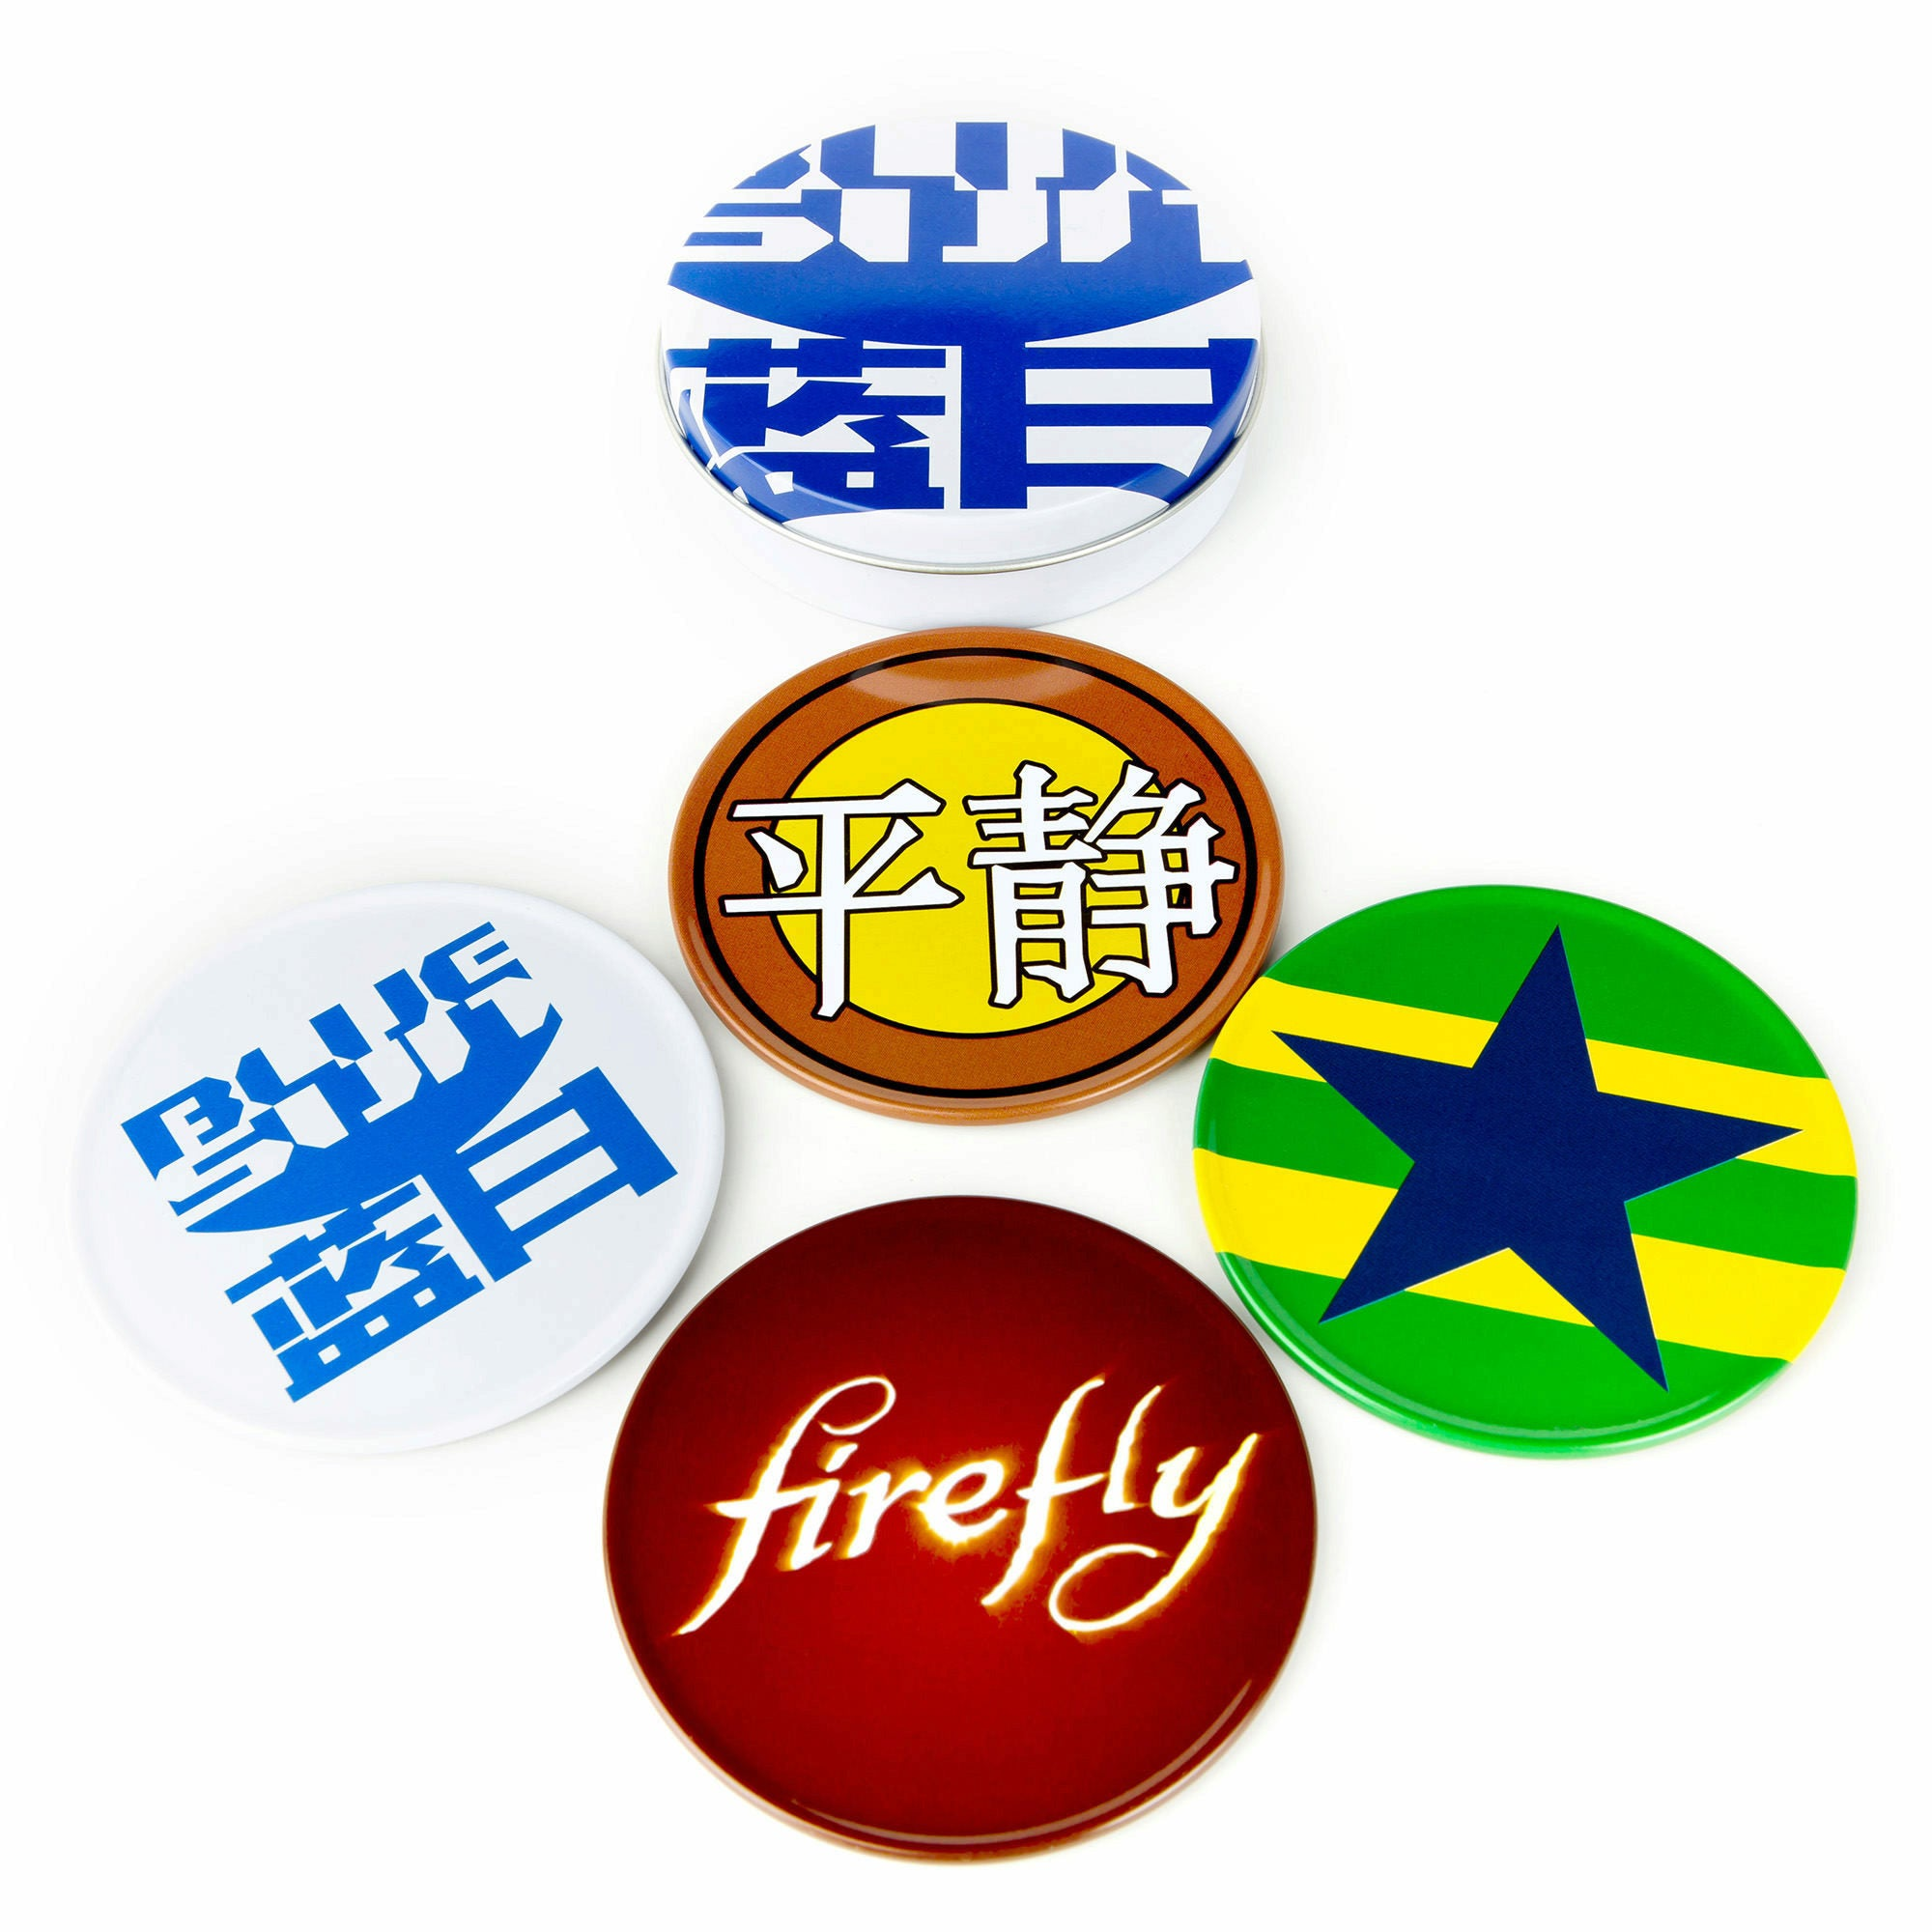 Firefly Coasters - Set of 4 with Tin